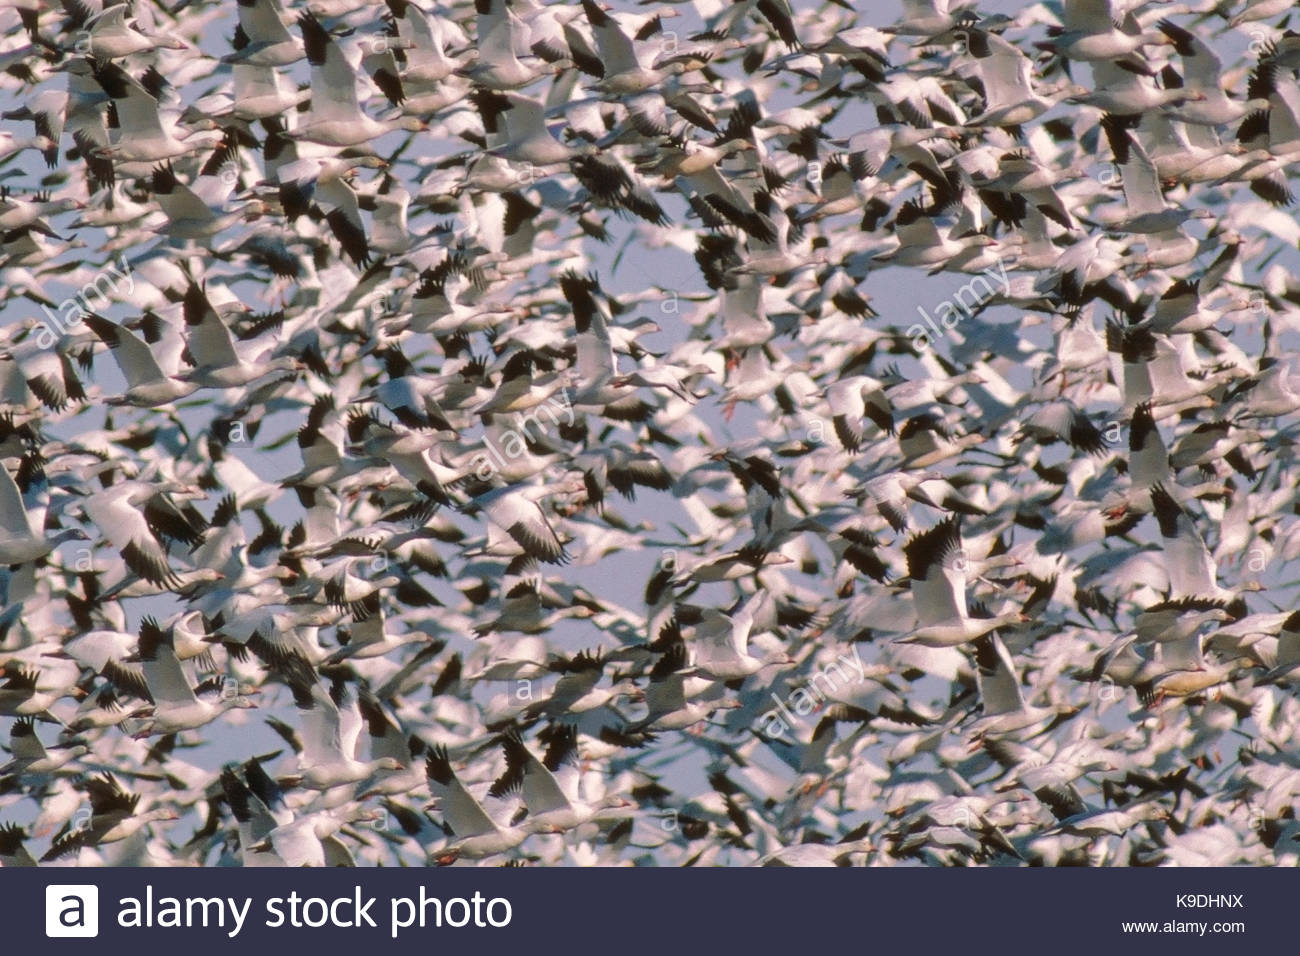 Masses of Snow Geese in Flight, Gray Lodge Wildlife Area, California - Stock Image